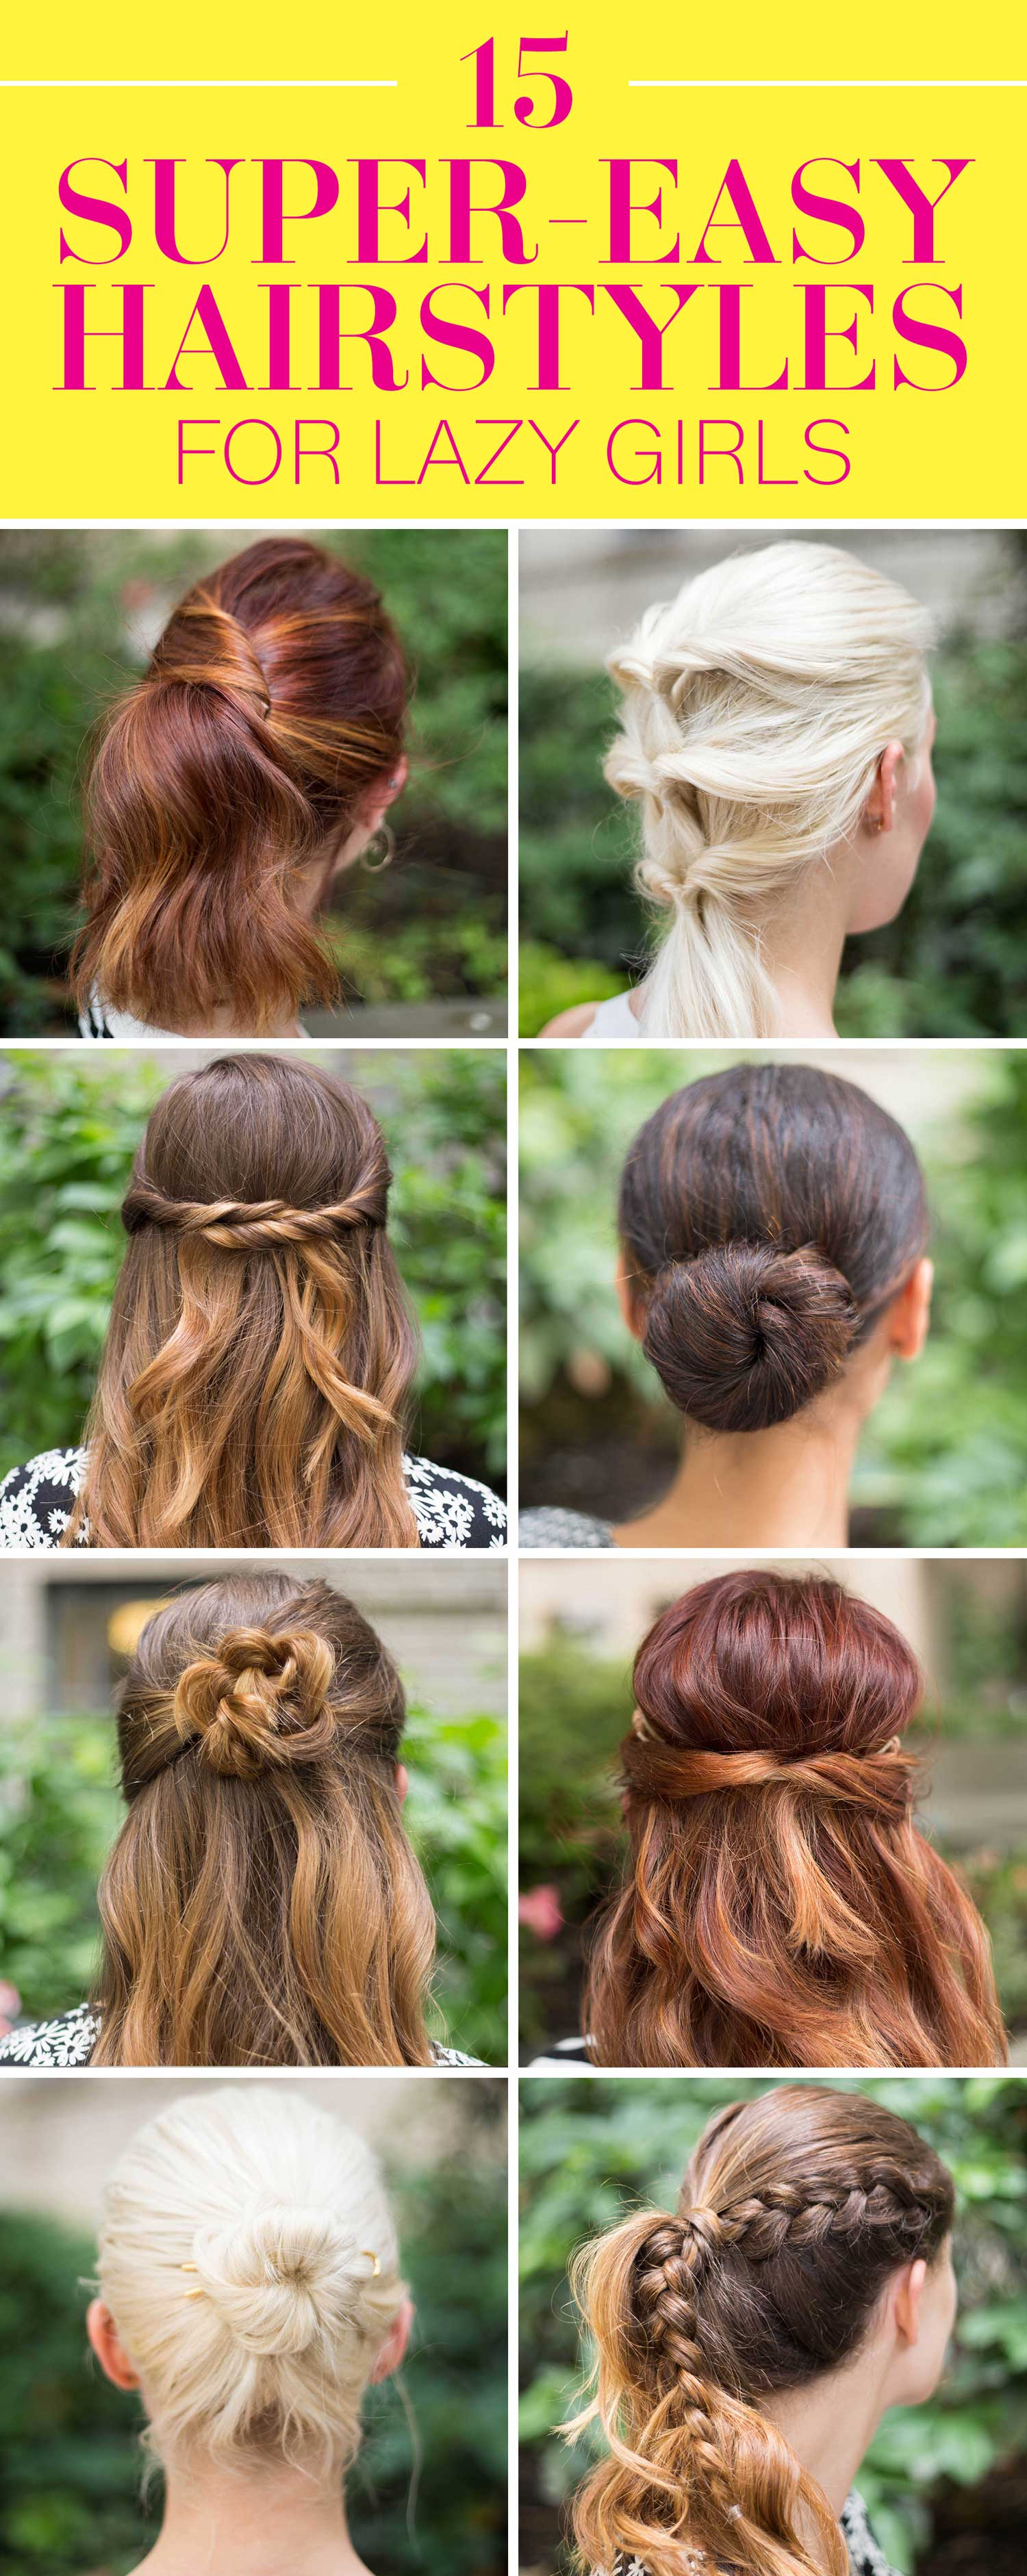 15 Super Easy Hairstyles For Girls In 2016